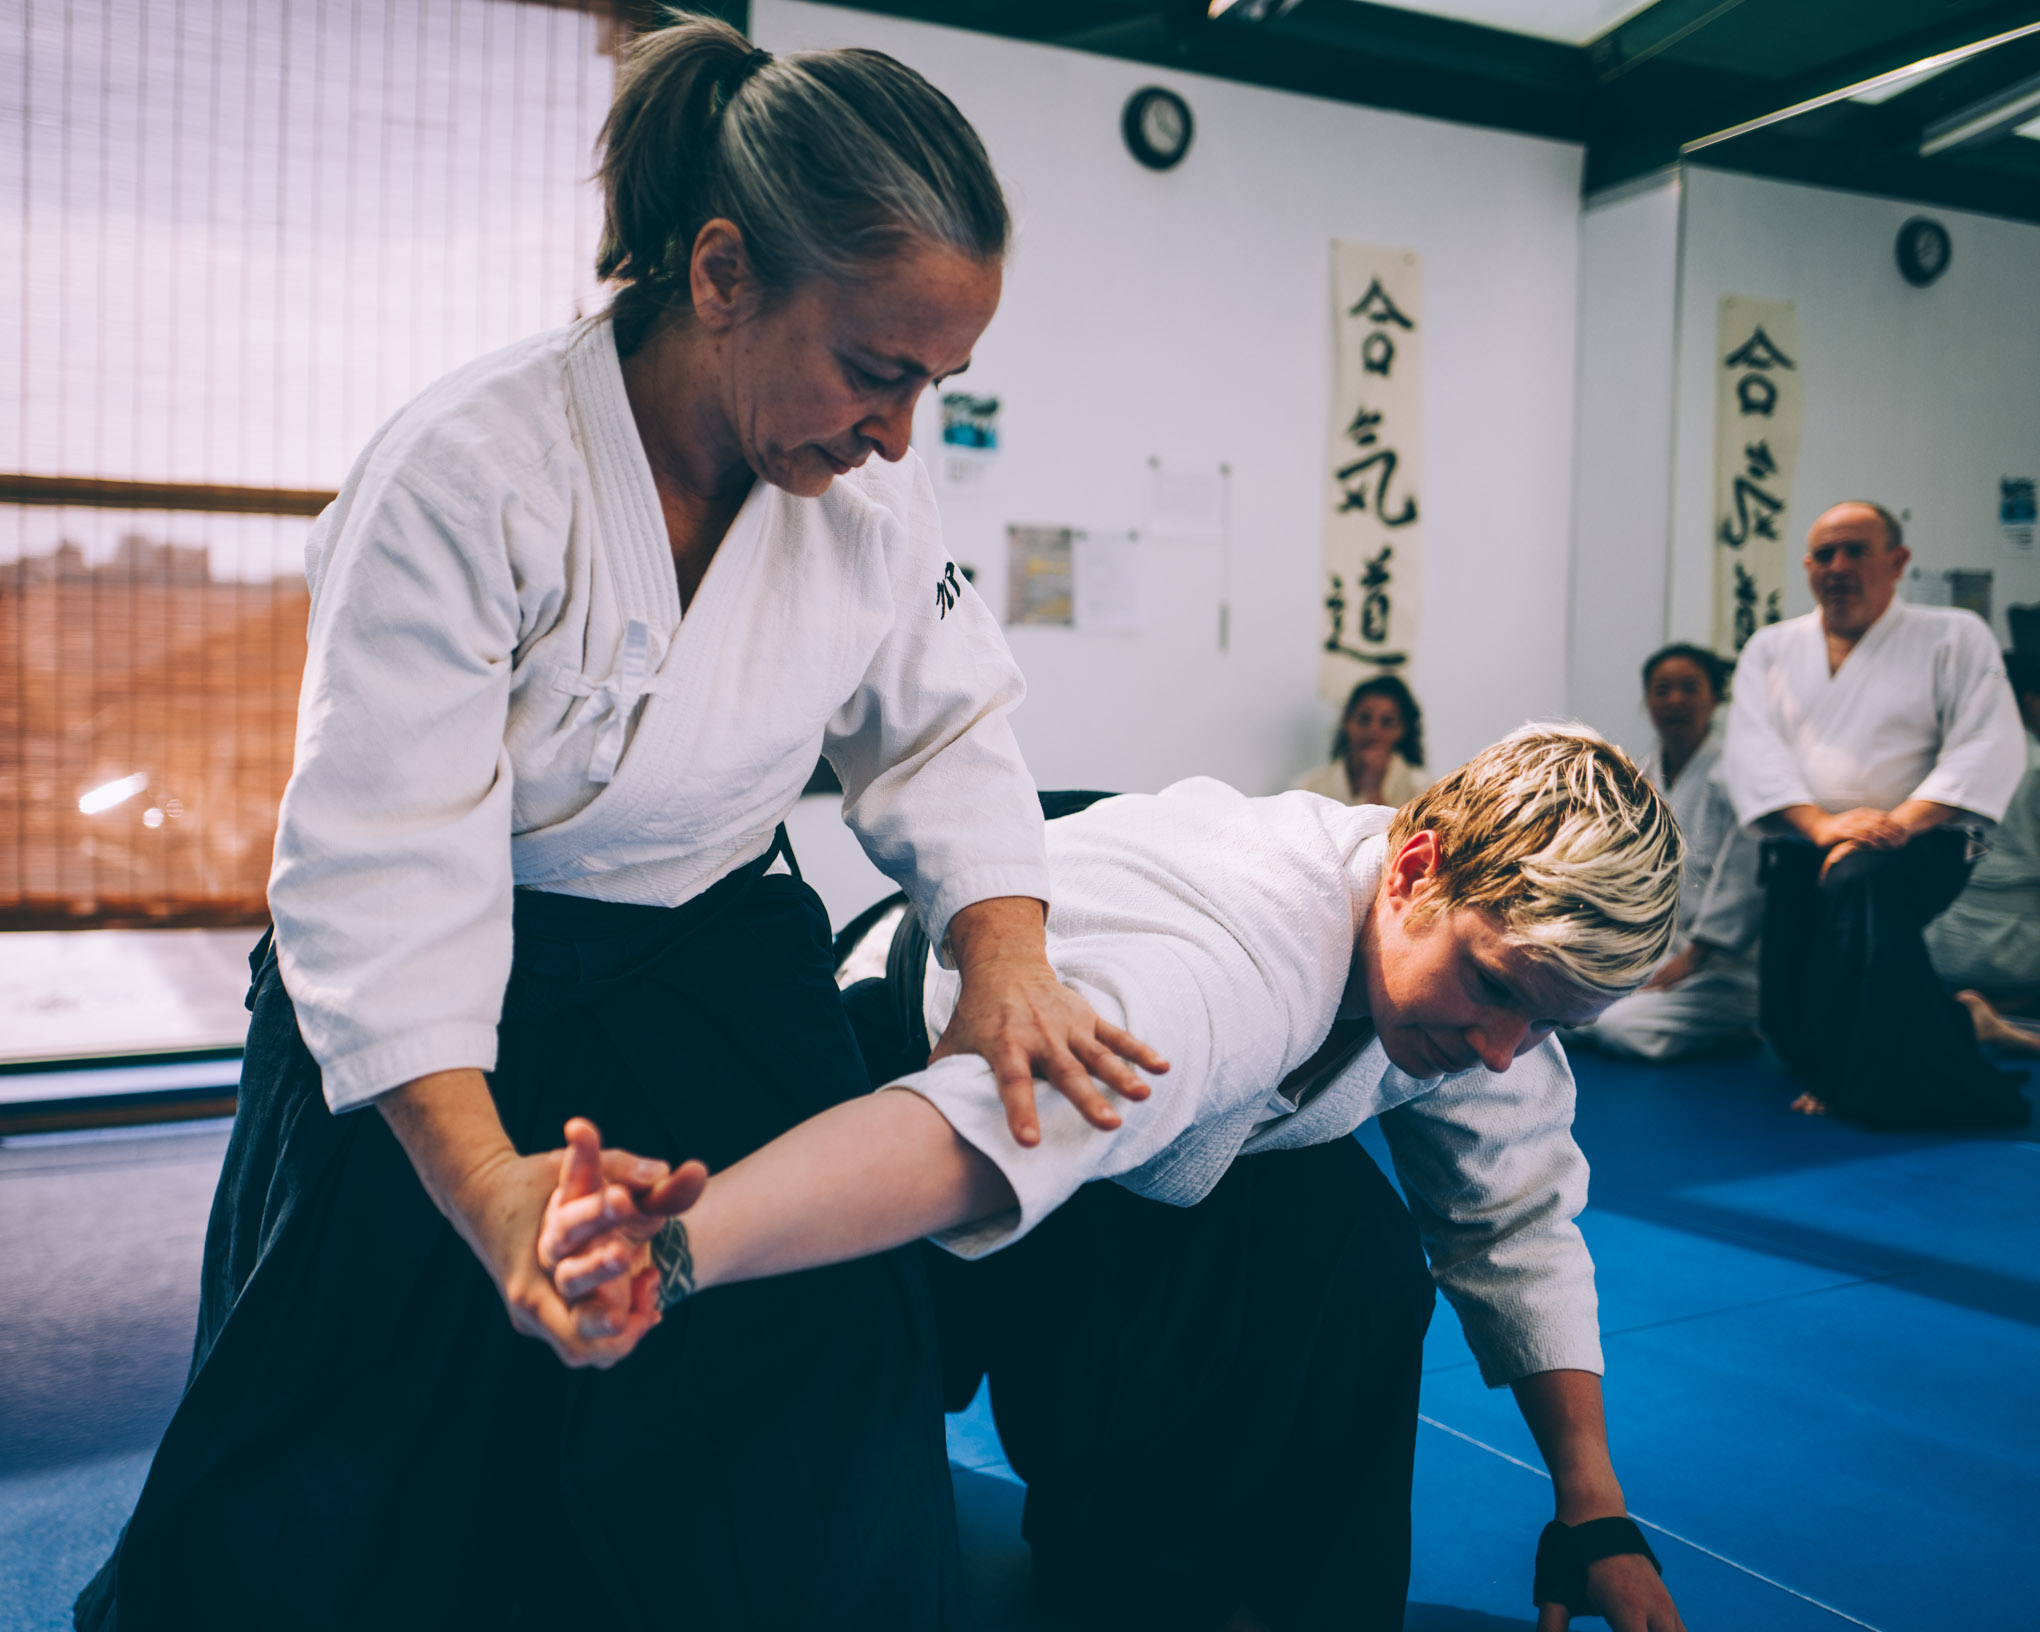 Claire Keller demonstrates nikkyo during an Aikido class at Bushwick Dojo in Brooklyn, New York